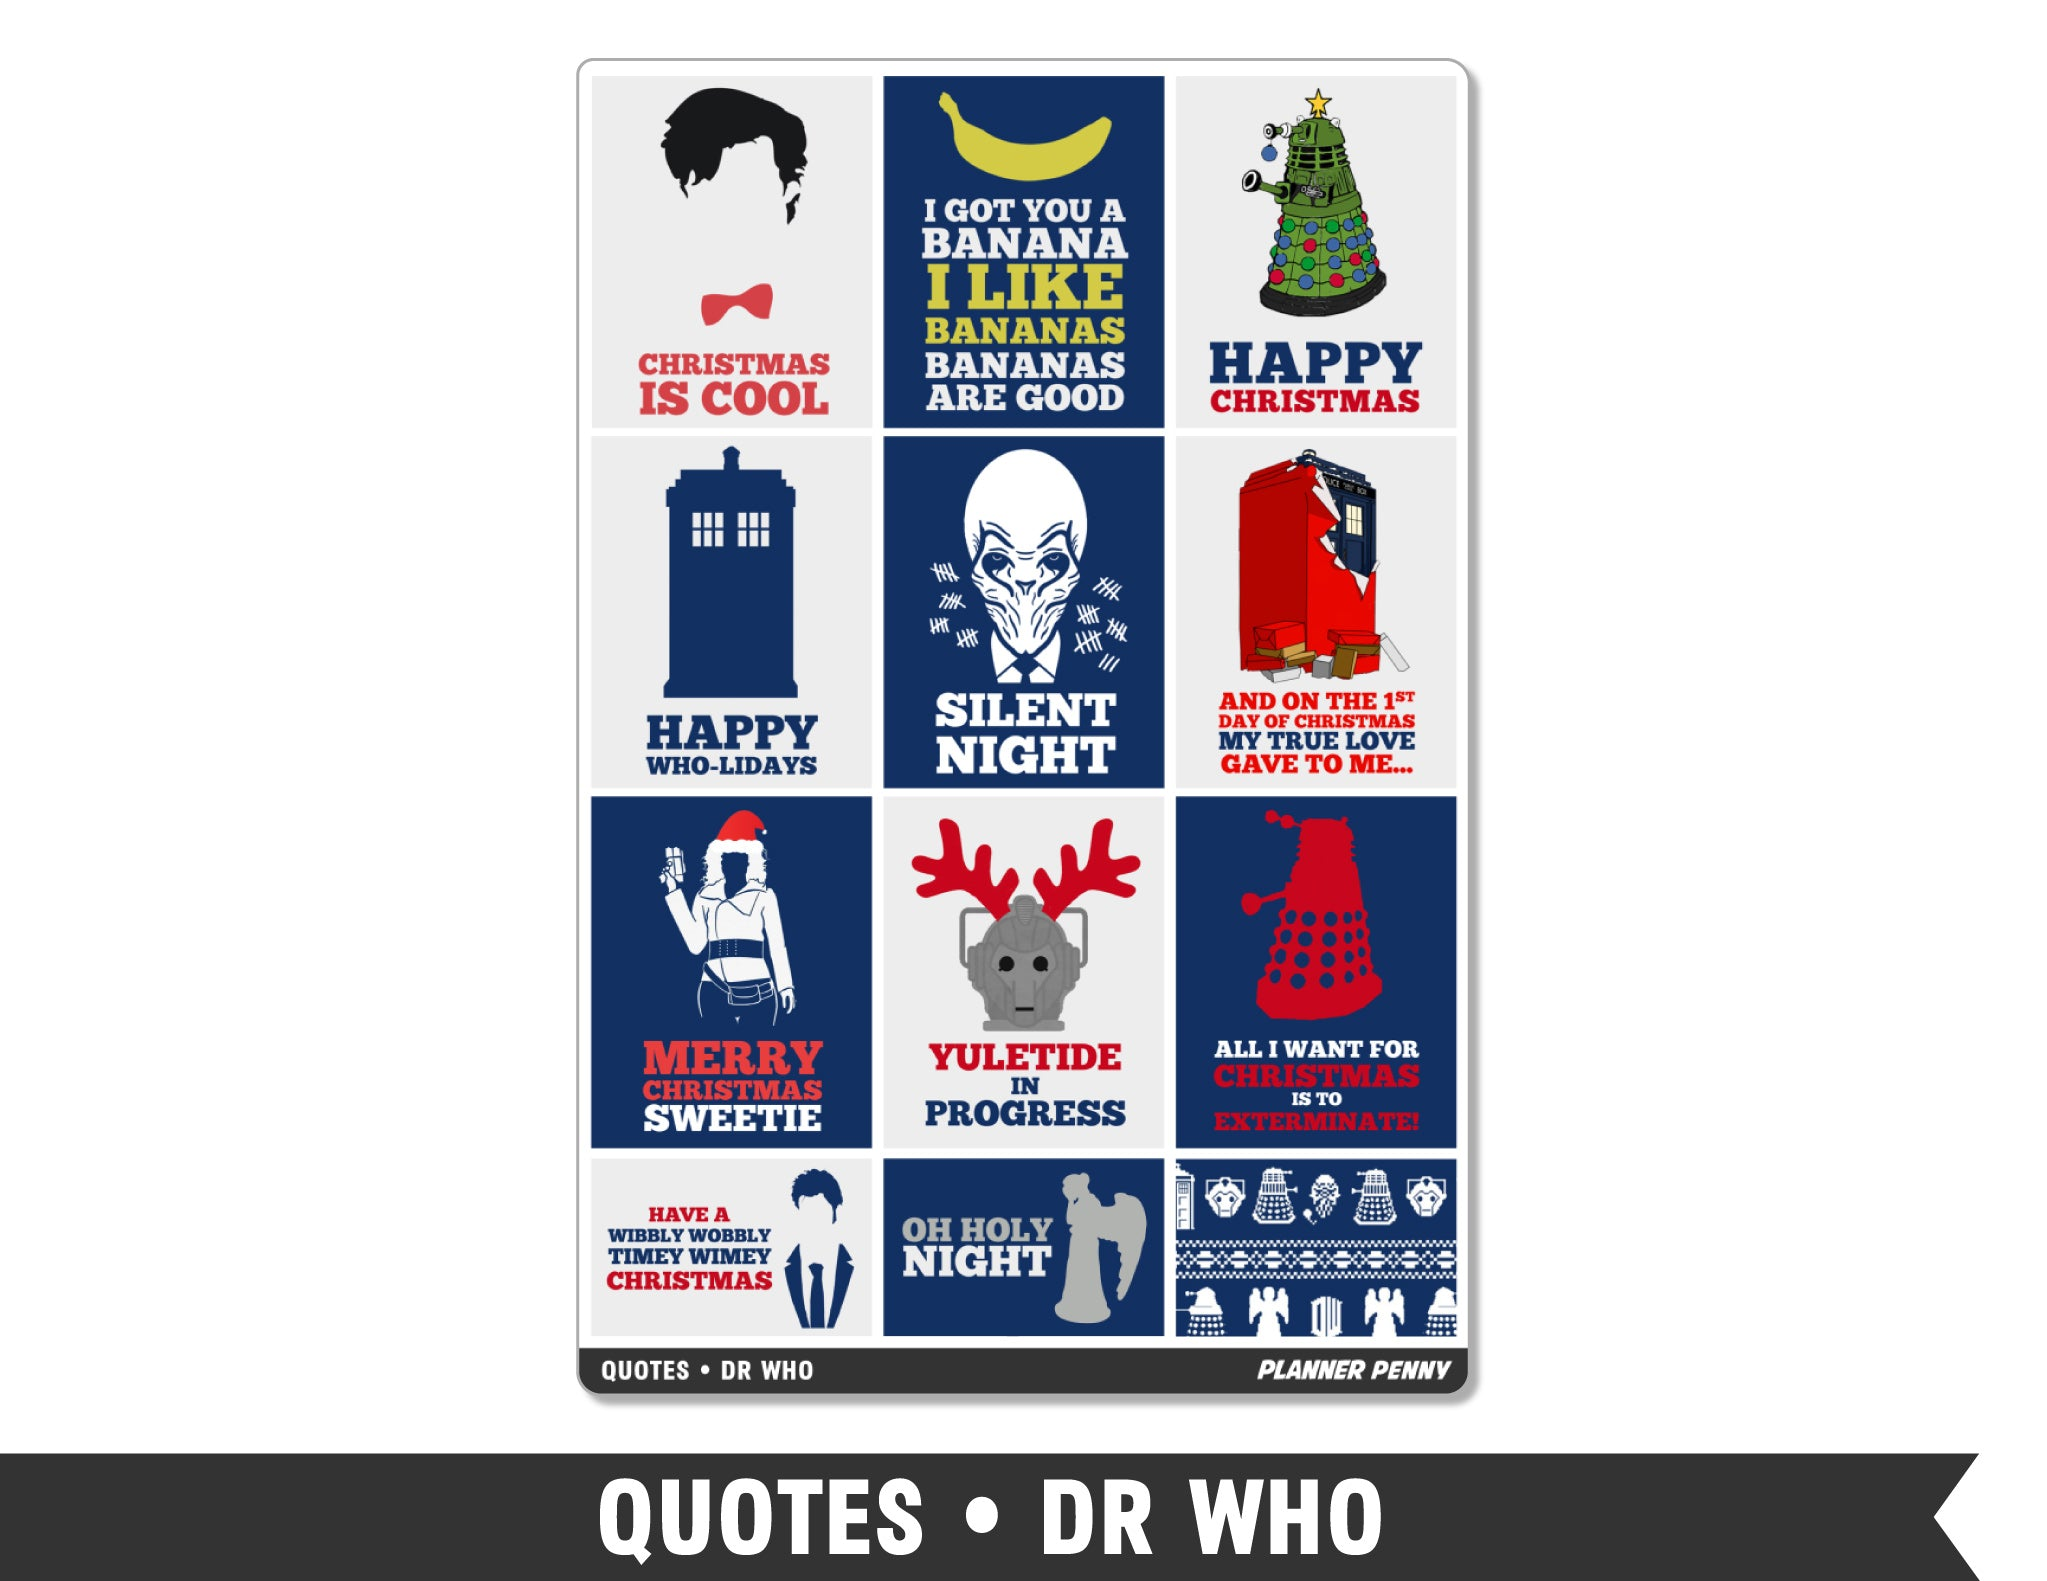 Quotes • Dr Who Full Box Planner Stickers - Planner Penny